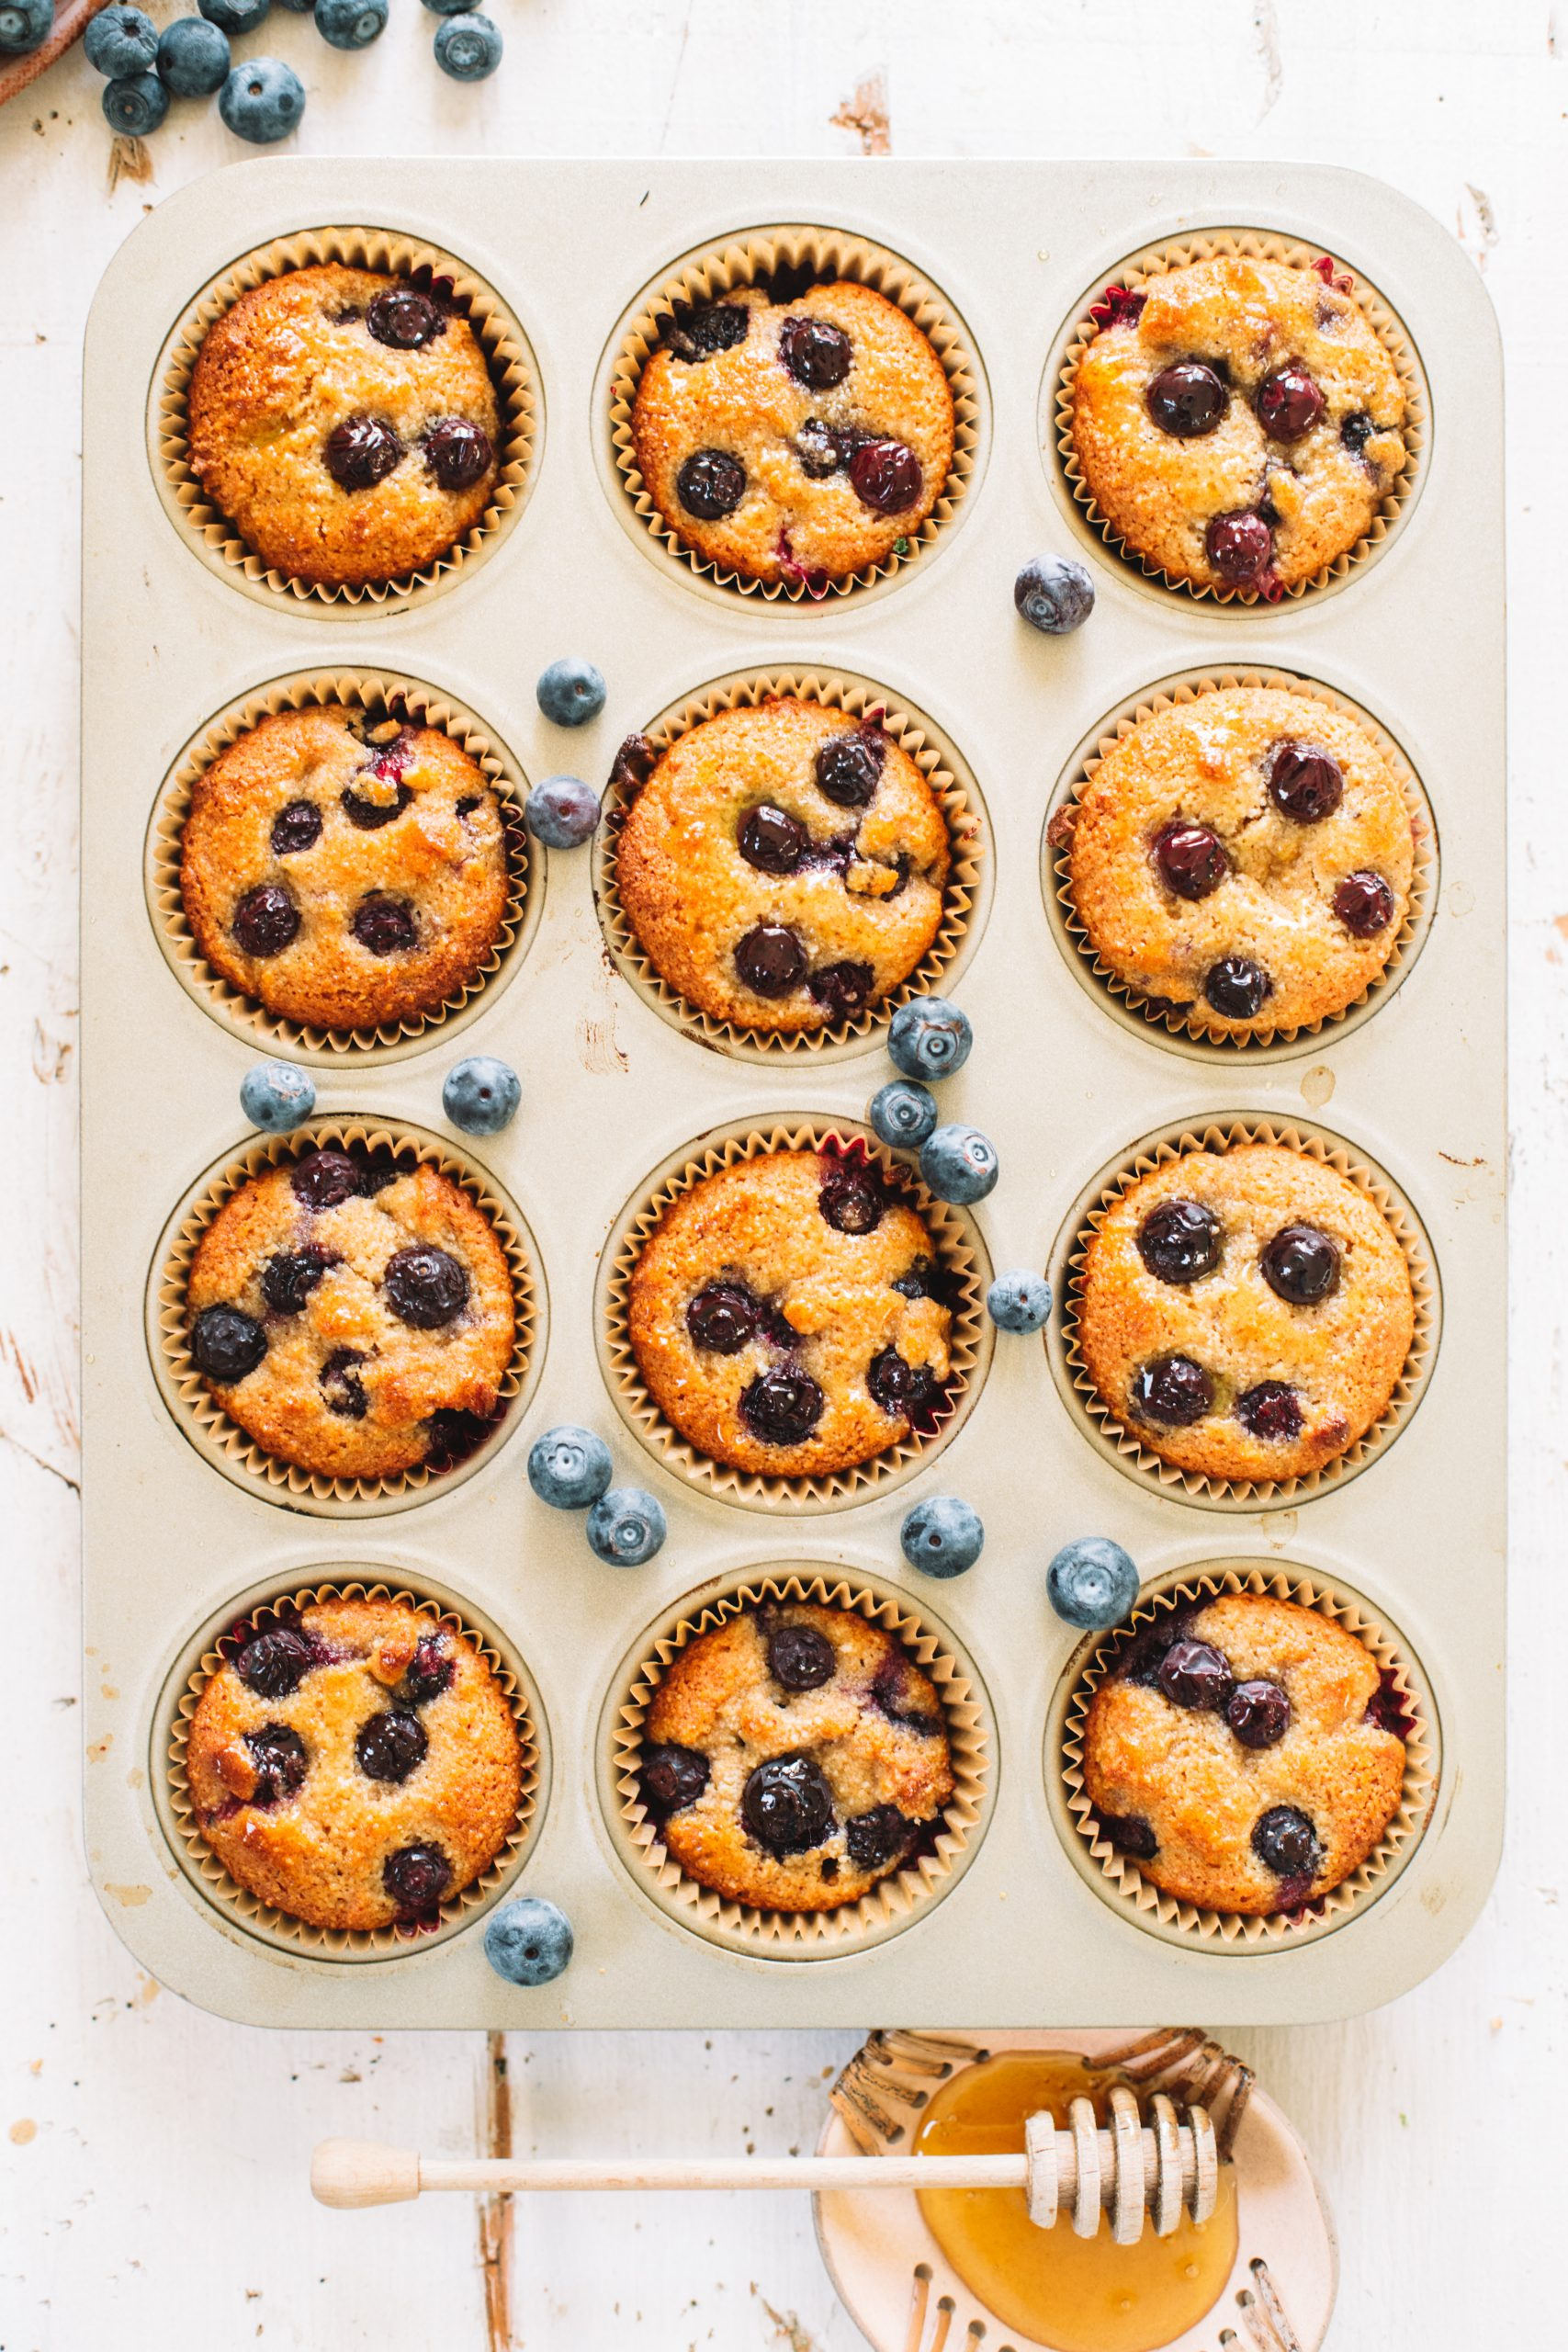 Healthy blueberry muffins baked into a cupcake tin.